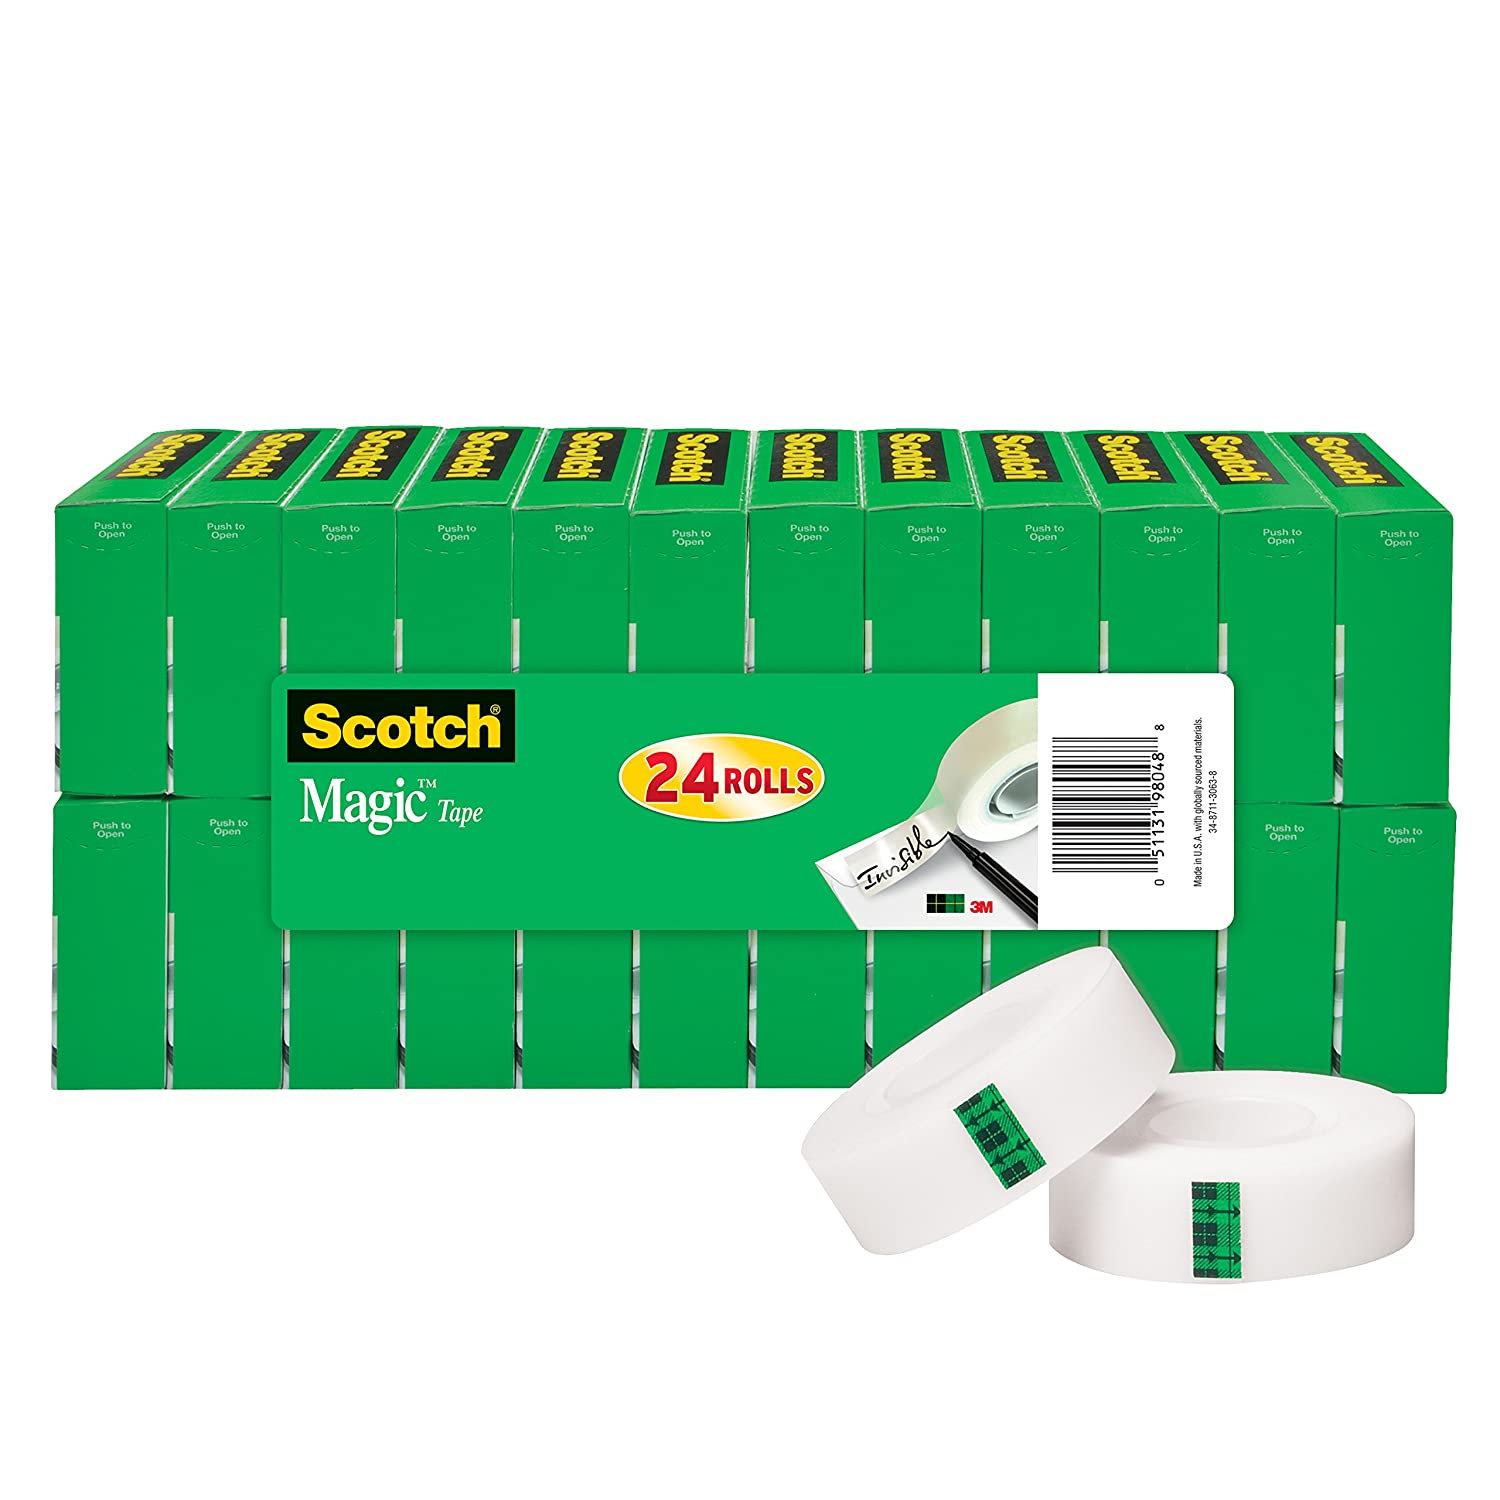 Scotch Brand Magic Tape, Standard Width, Versatile, Invisible, The Original, Engineered for Office and Home Use, 3/4 x 1000 Inches, Boxed, 24 Rolls (810K24)